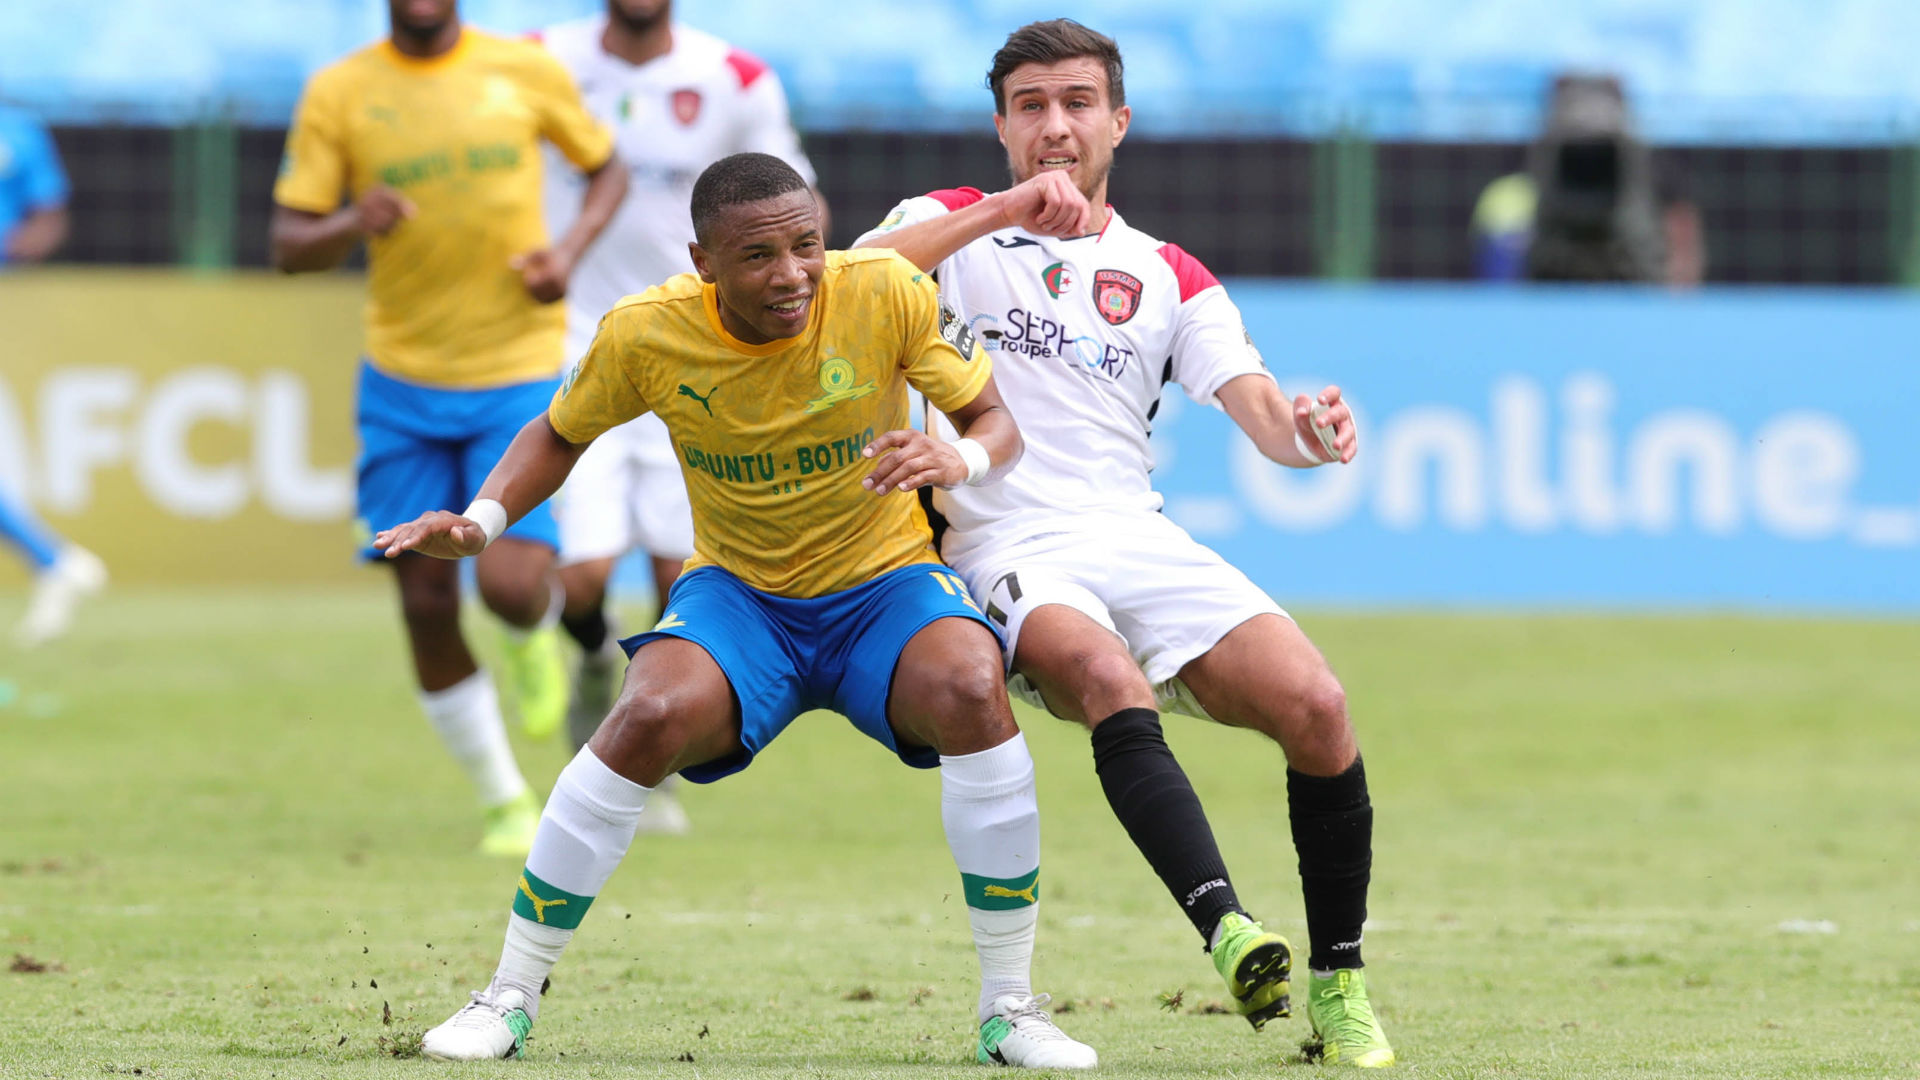 Caf Champions League - Mamelodi Sundowns 2-1 USM Alger: Masandawana ease into quarter-finals